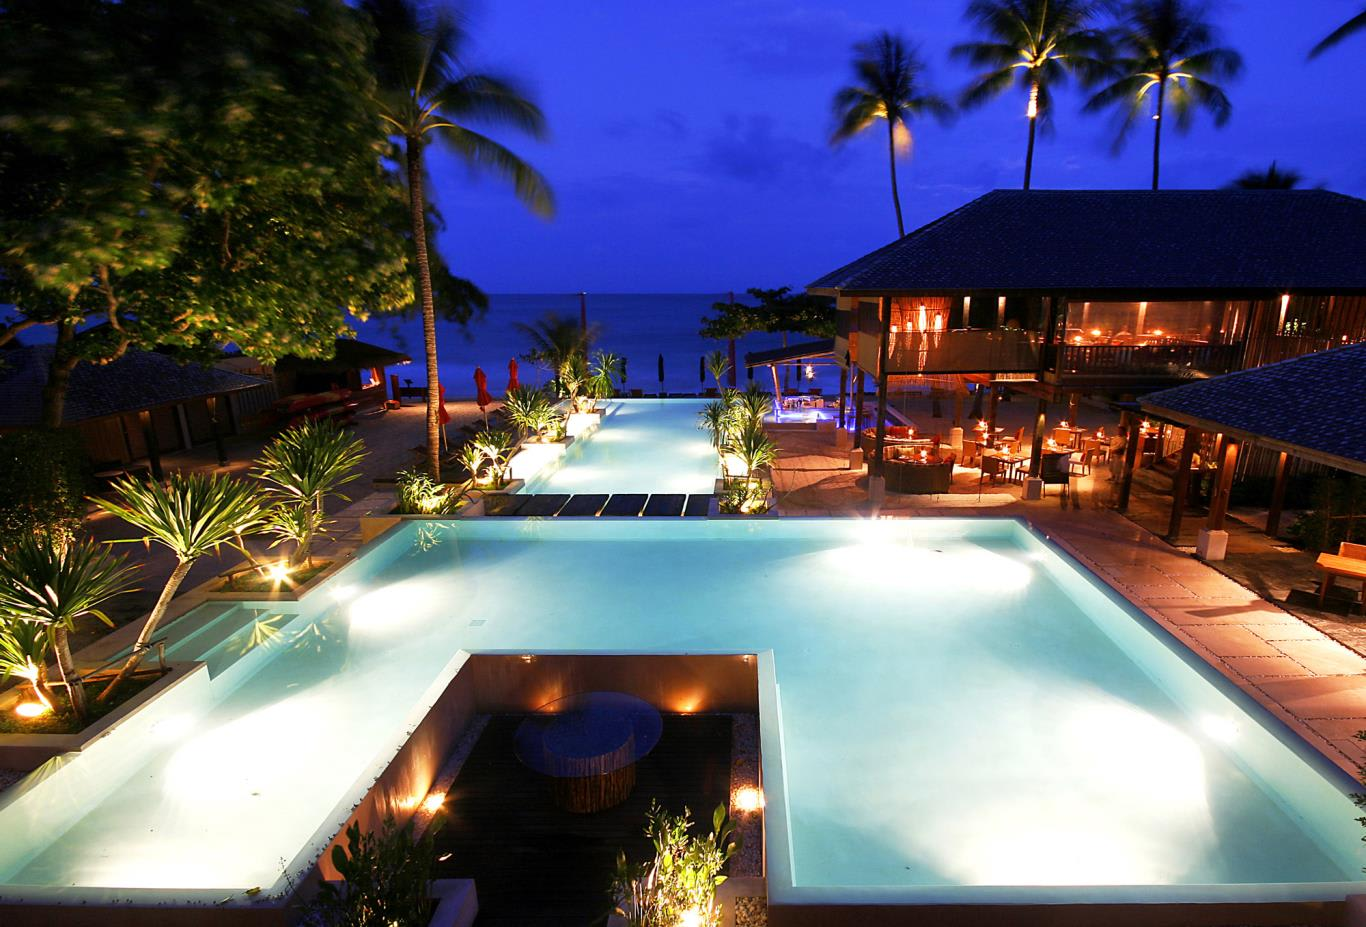 Nighttime-shot-with-pool